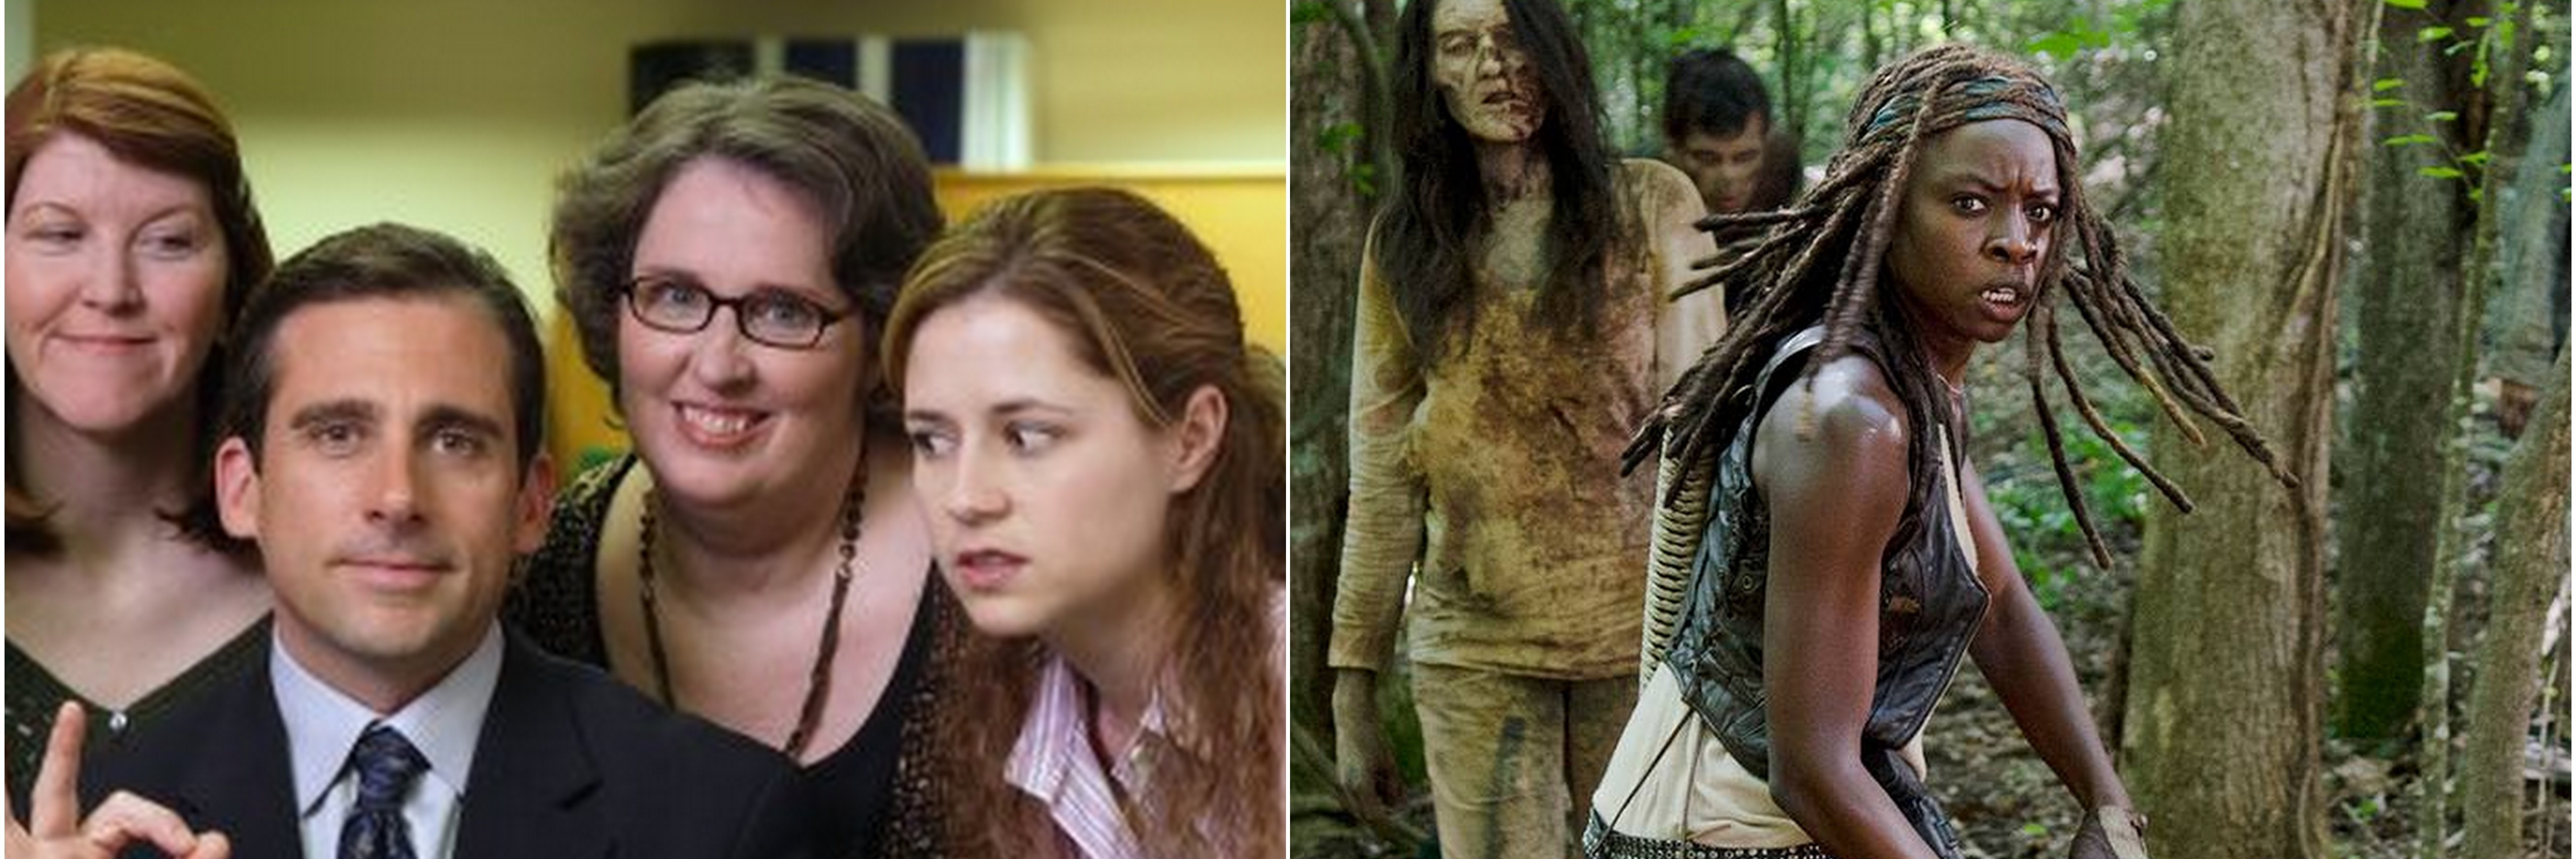 the office and the walking dead images